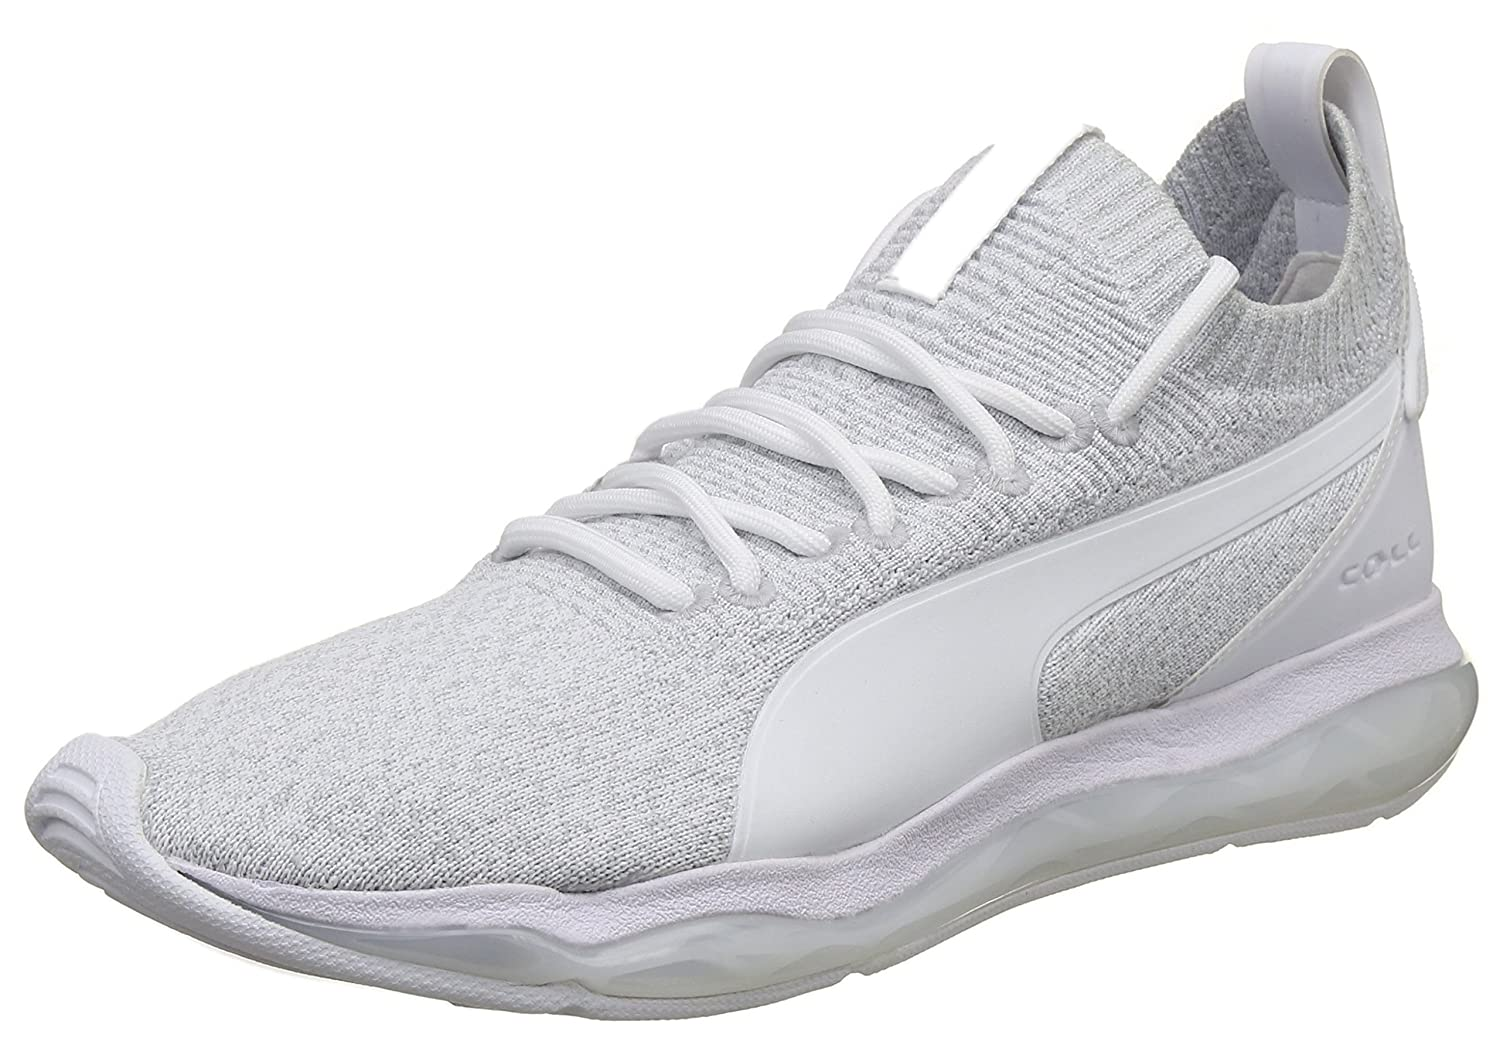 Puma Unisex s Cell Motion Evoknit Gray Violet White Sneakers-11 UK India  (46 EU) (36487401)  Buy Online at Low Prices in India - Amazon.in c234d4669